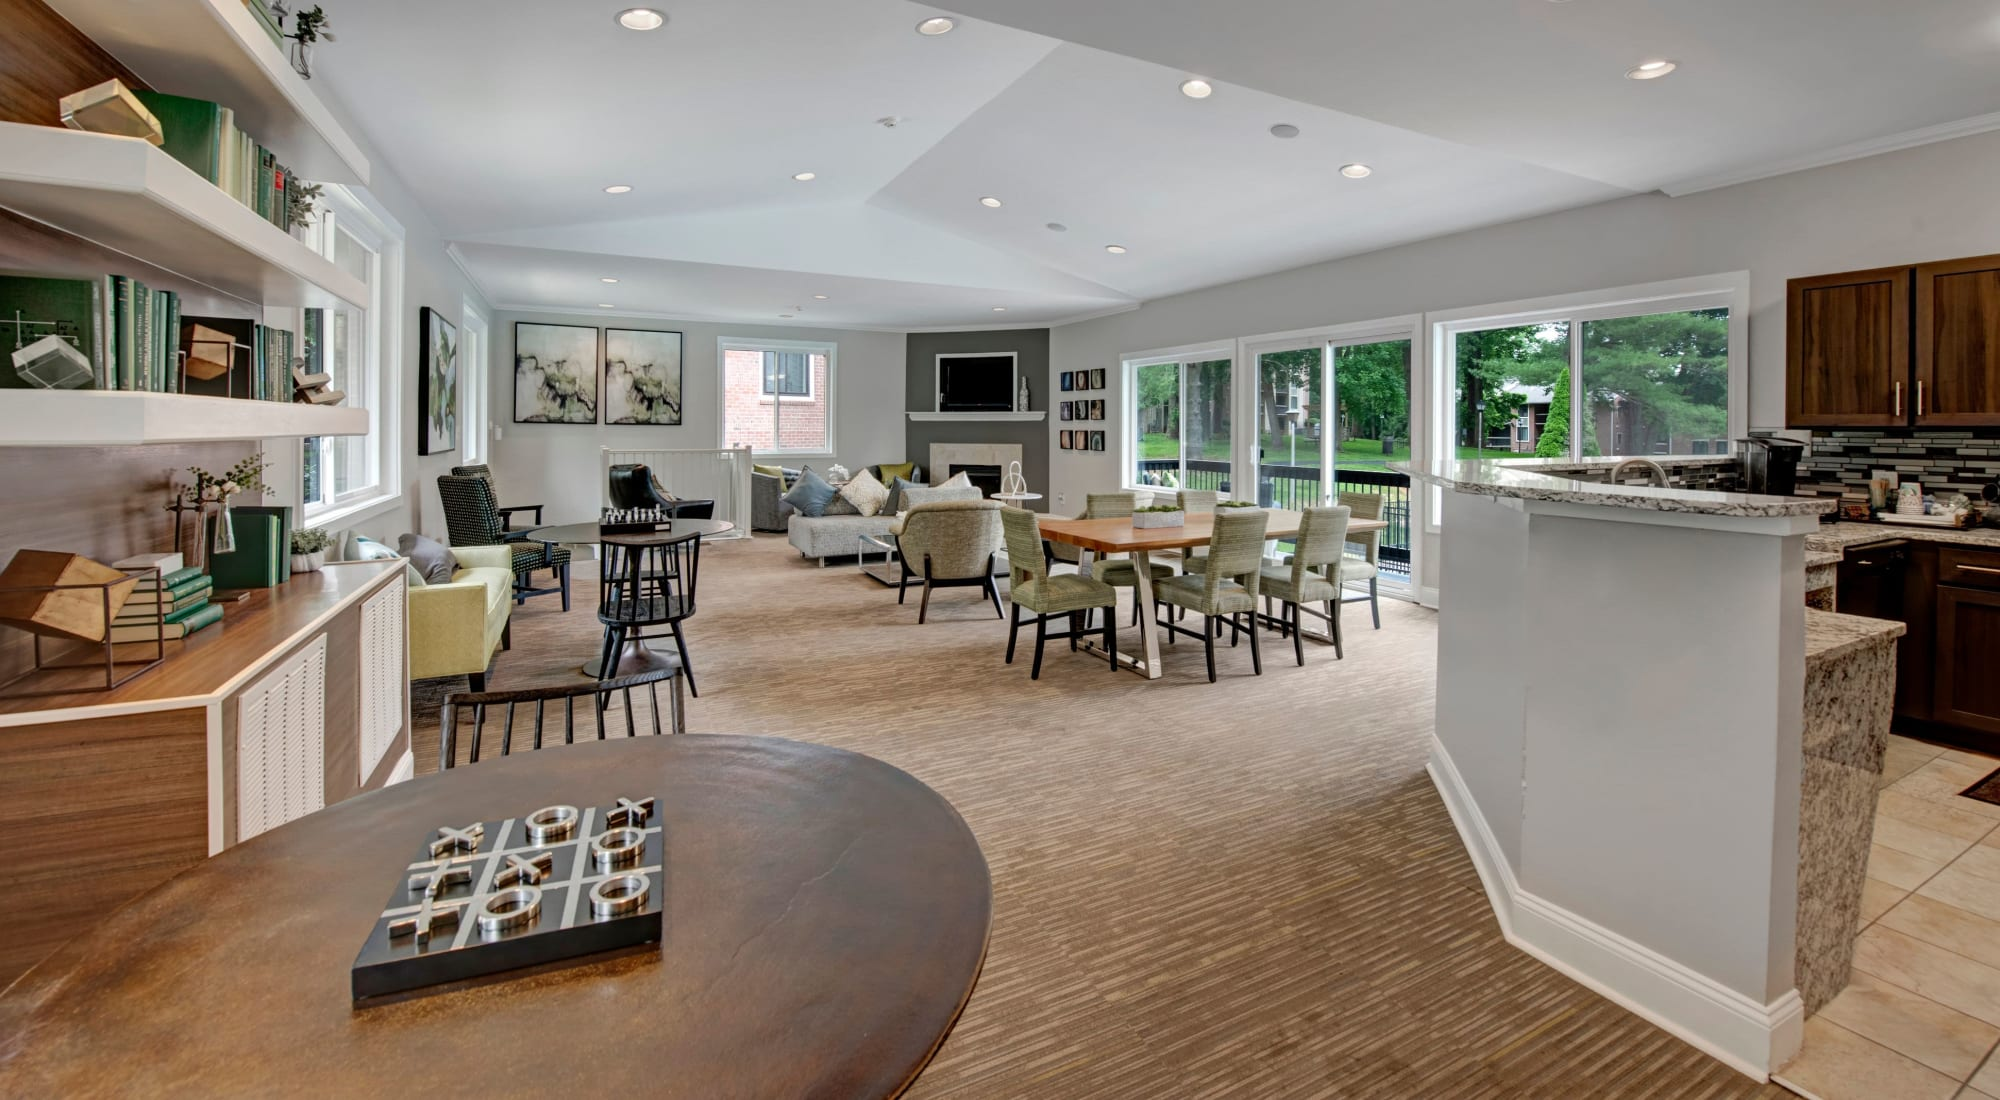 Schedule your tour of West Springfield Terrace in Springfield, Virginia